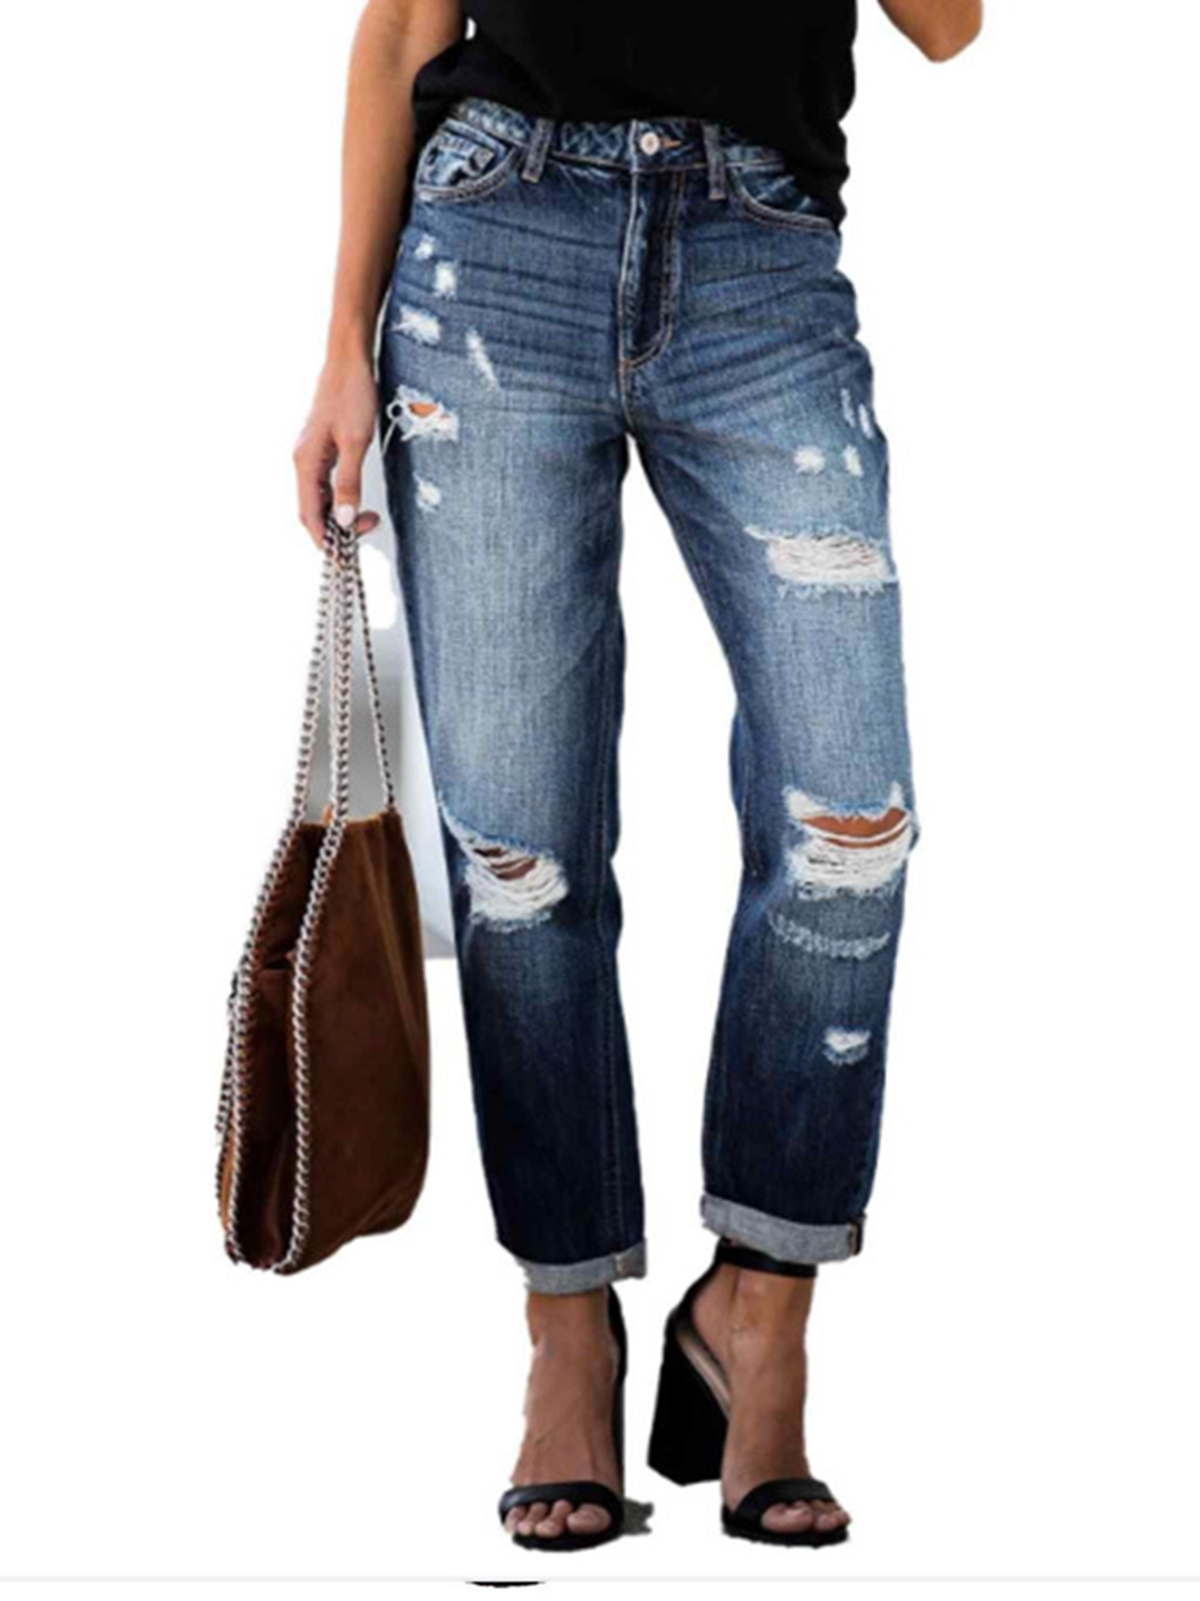 Ripped sexy women's jeans